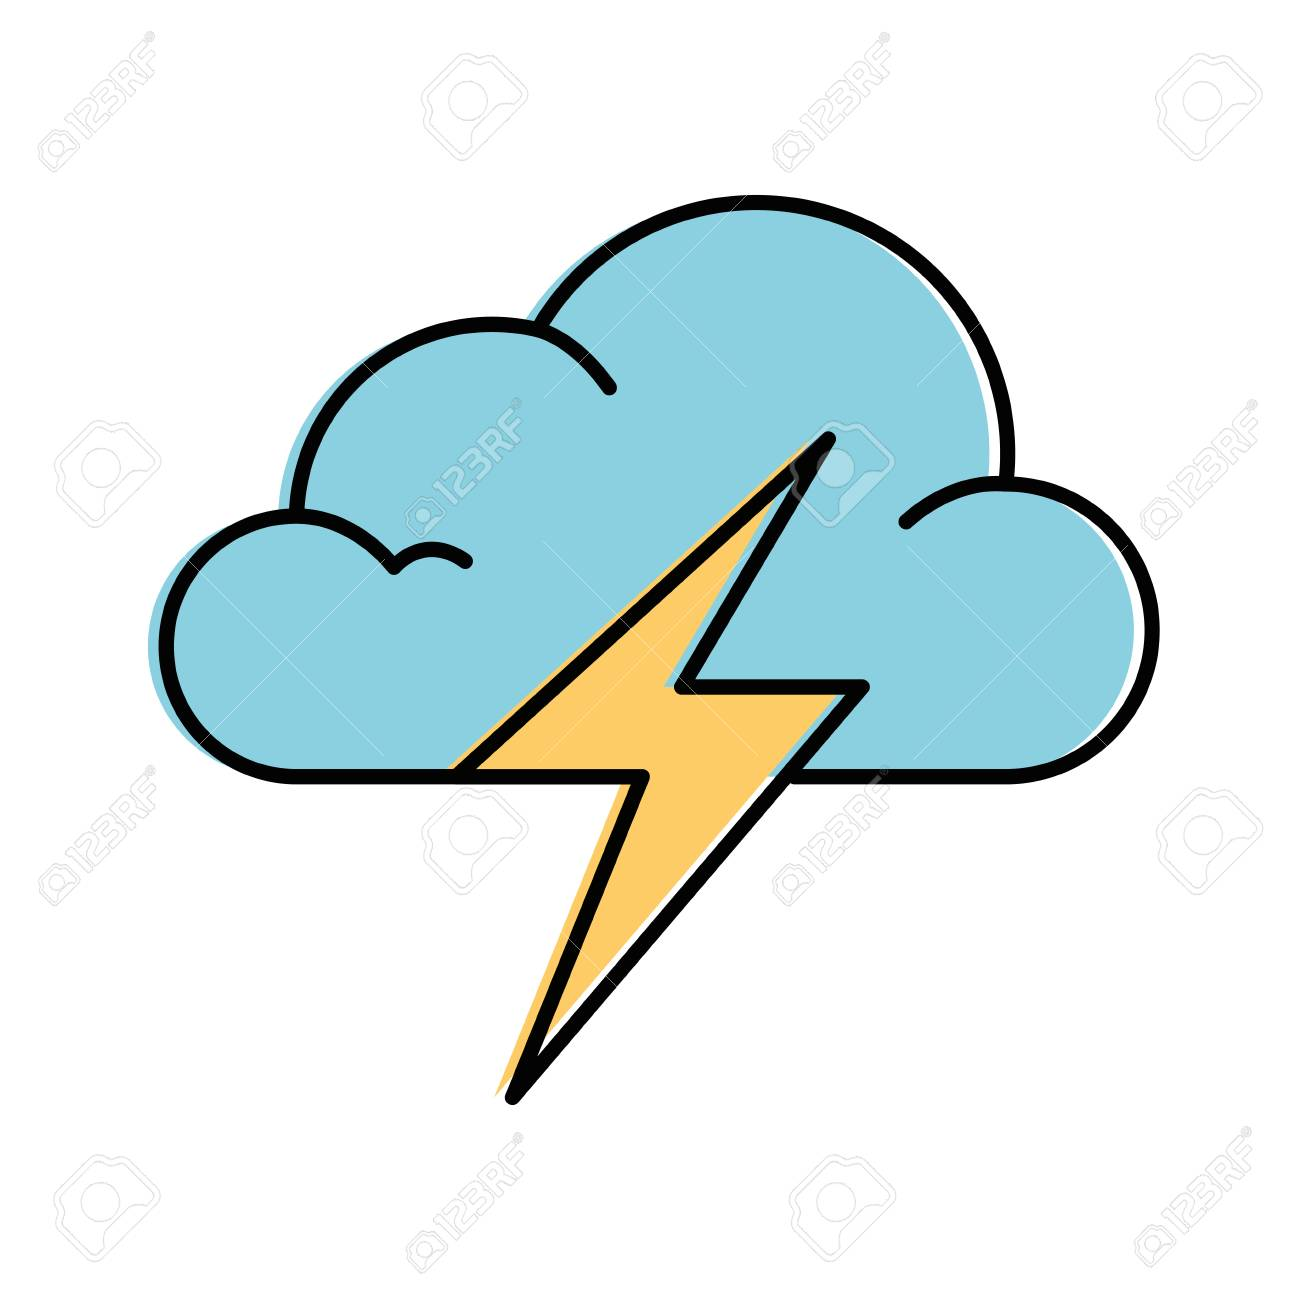 cloud weather with thunder vector illustration design royalty free cliparts vectors and stock illustration image 87692105 cloud weather with thunder vector illustration design